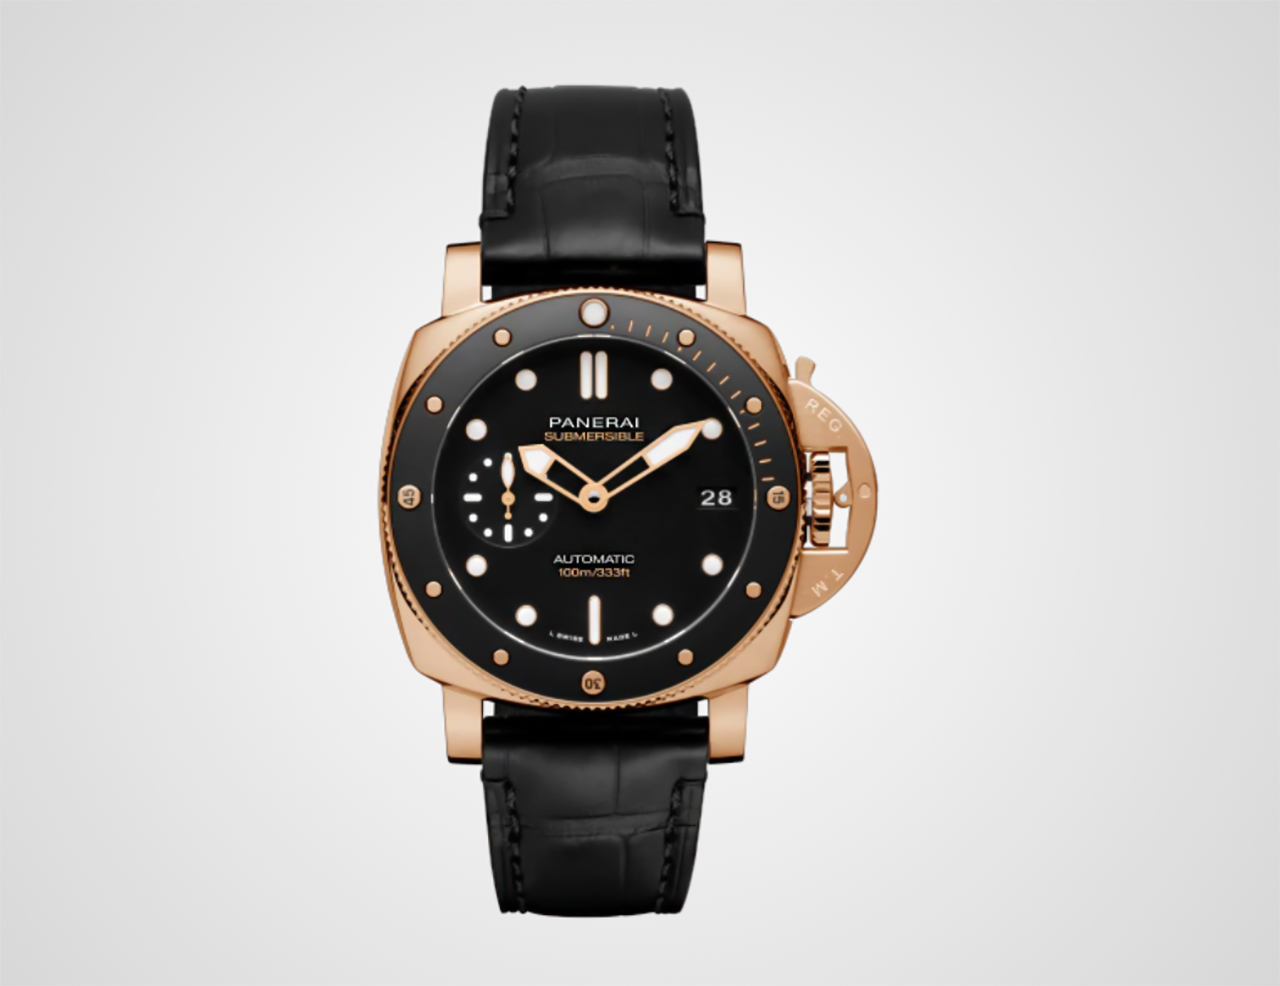 PANERAI SUBMERSIBLE 42MM GOLDTECH Referenciaszám: PAM00947. Fotó: Panerai